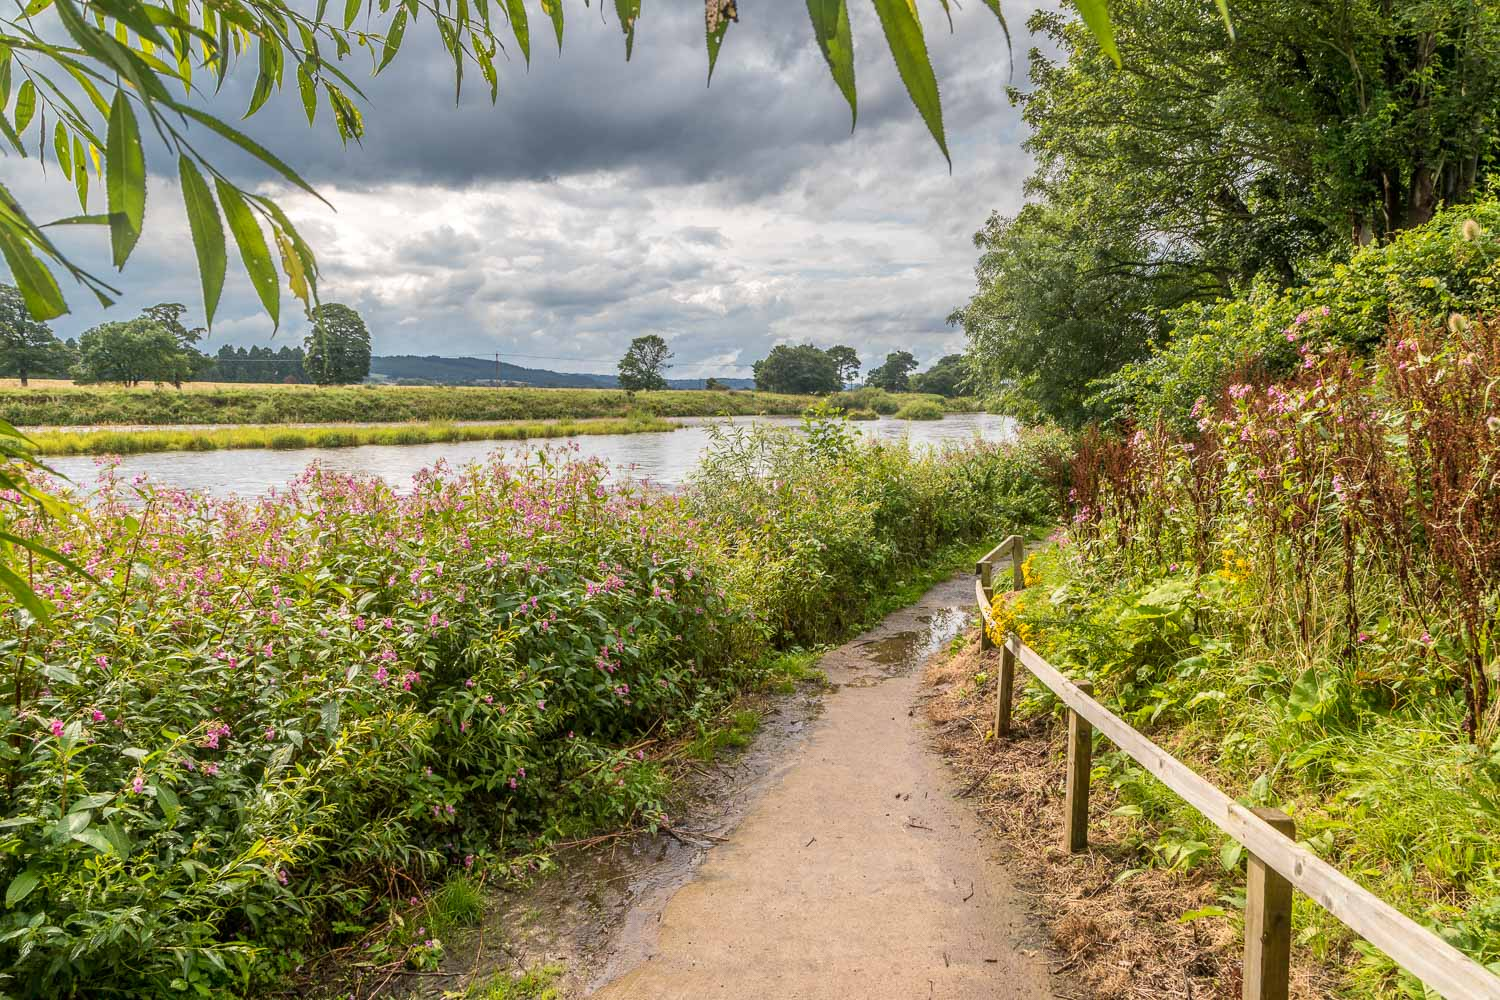 Corbridge walk, River Tyne